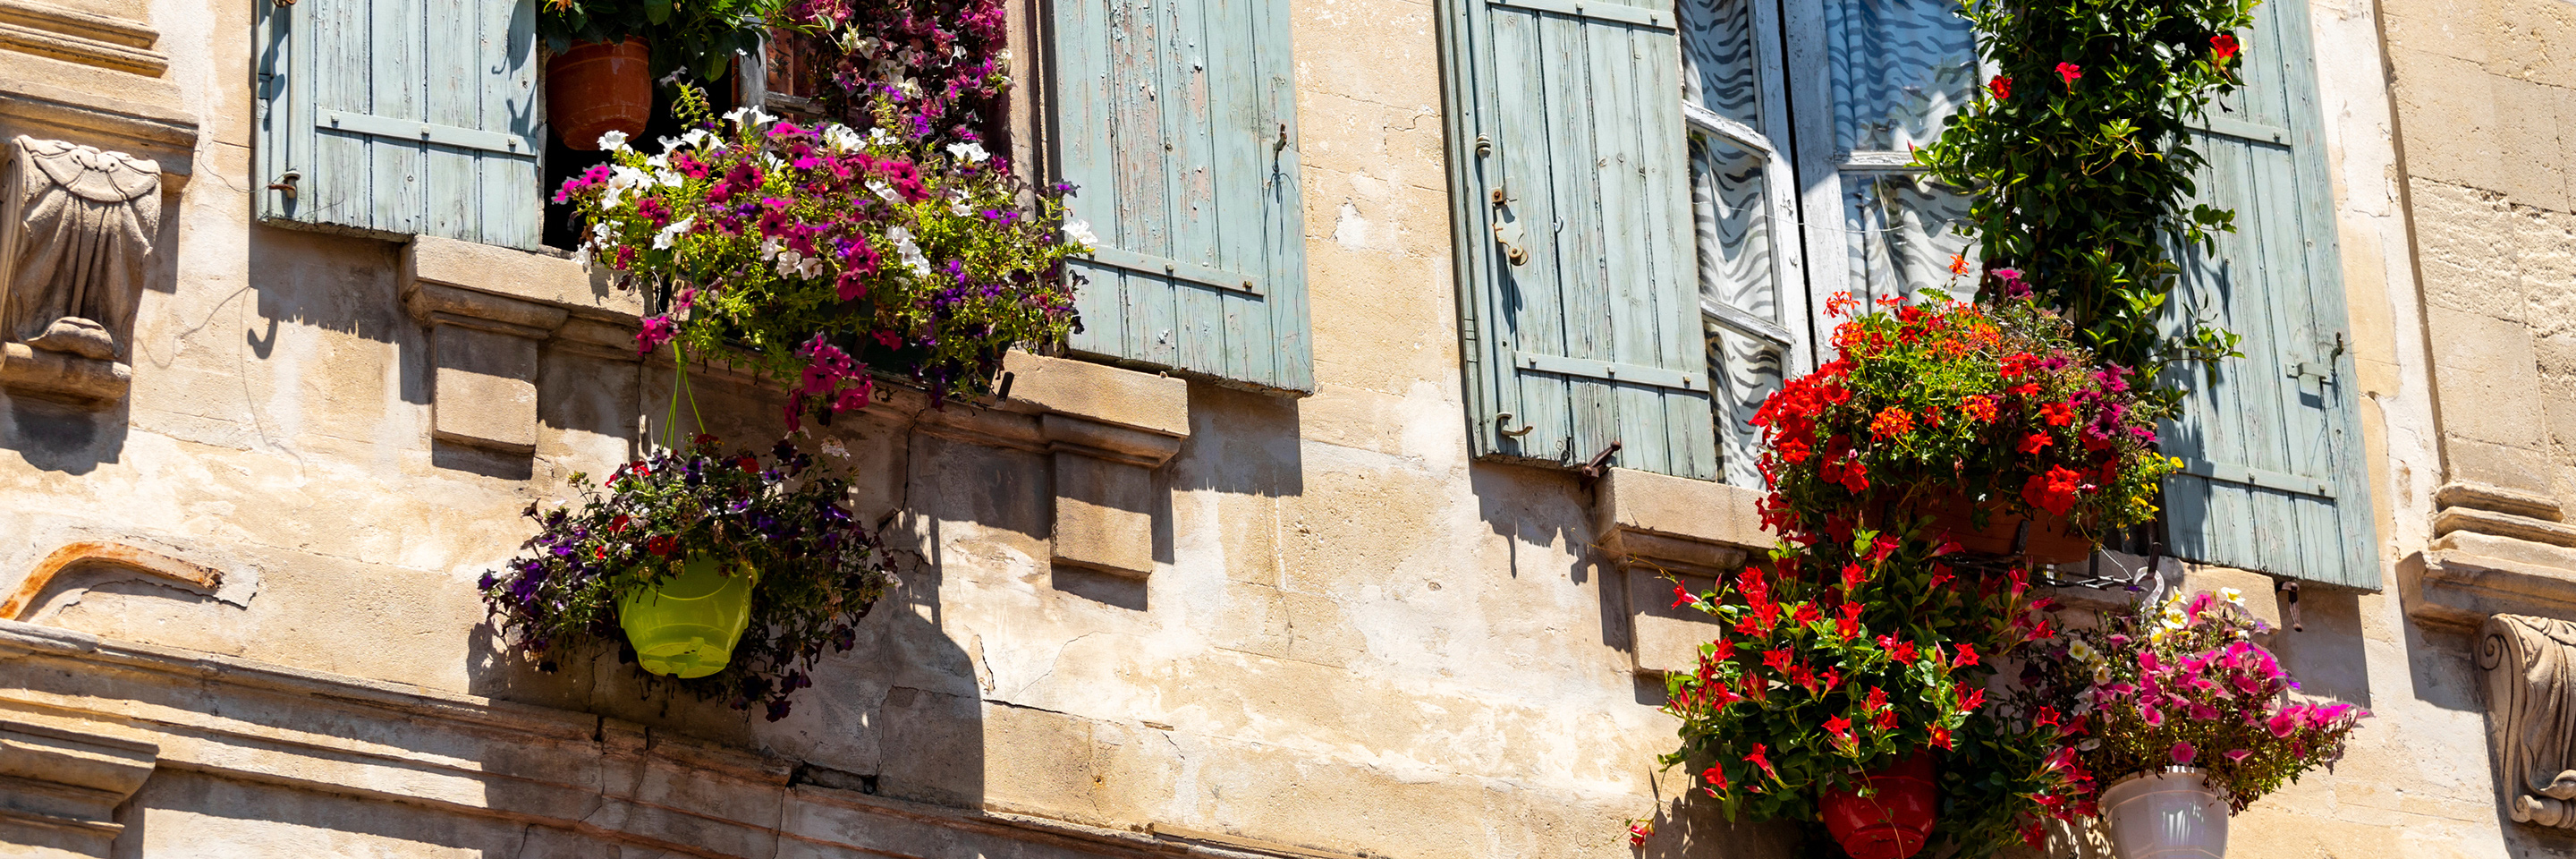 A Culinary Experience in Grand France with 2 Nights in Aix-en-Provence & 2 Nights in Nice (Southbound)